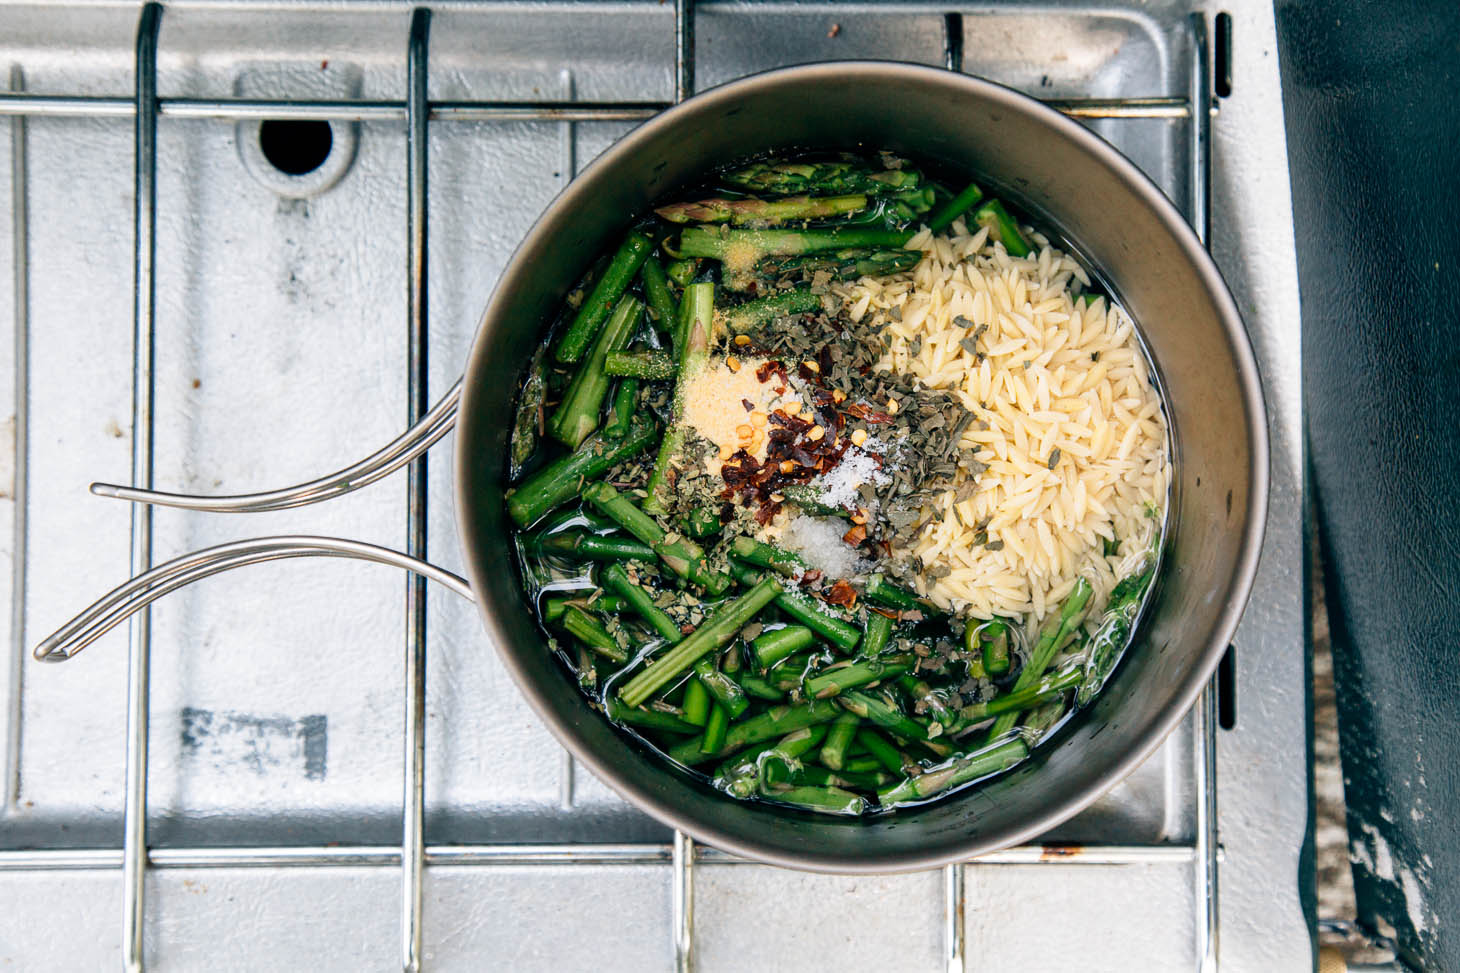 Ingredients for asparagus orzo in a cooking pot on a camping stove